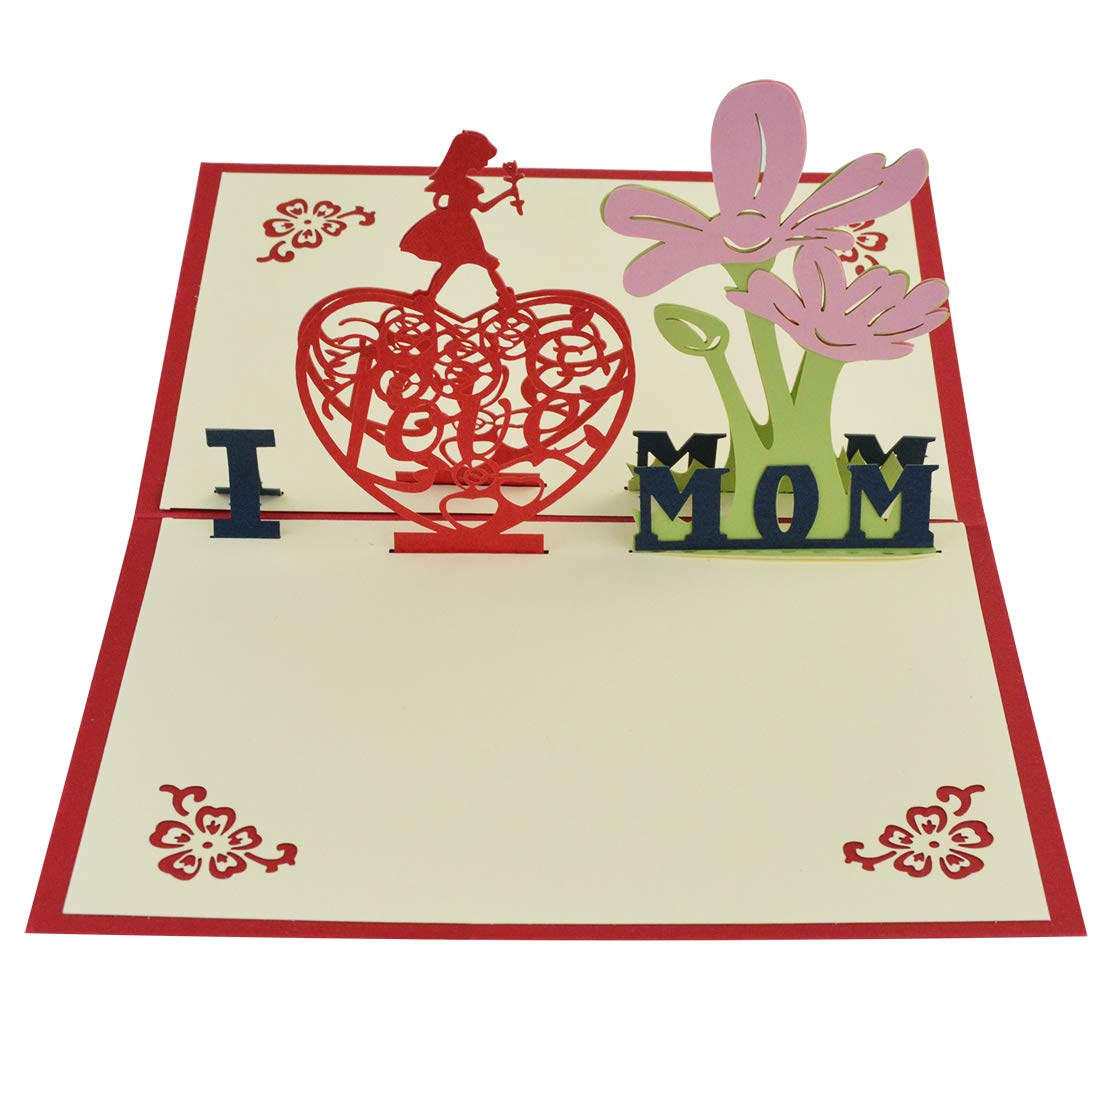 Tongcloud Mother's Day Cards, 3D cards with Envelope Sticker for Mother's Day,Mother's Gifts Special Event Greetings from Son, Daughter